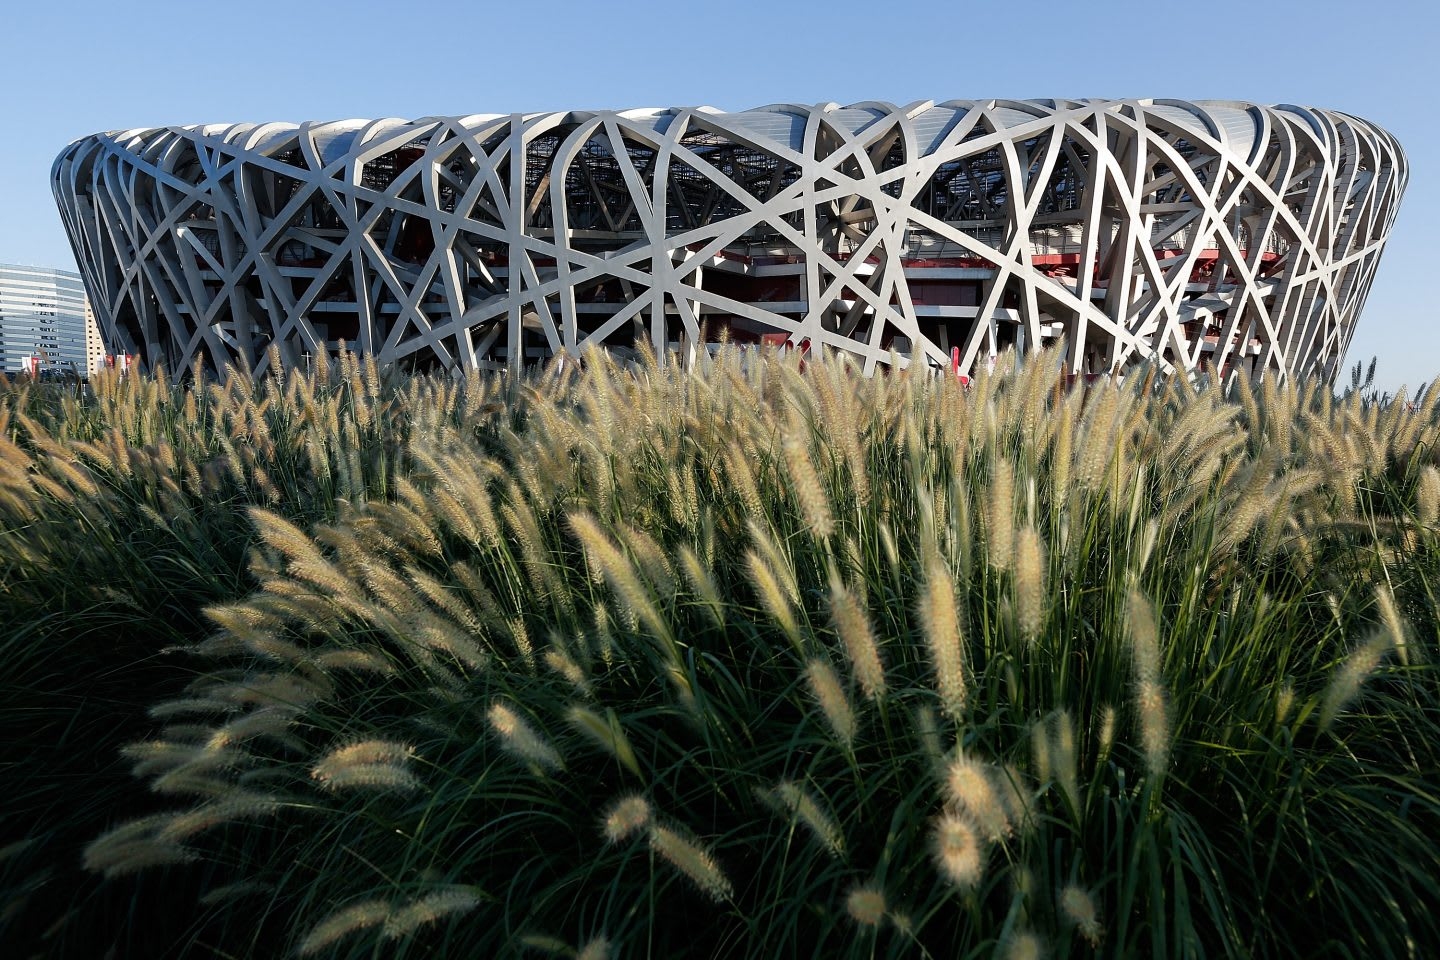 Beijing Olympic stadium - the bird's nest